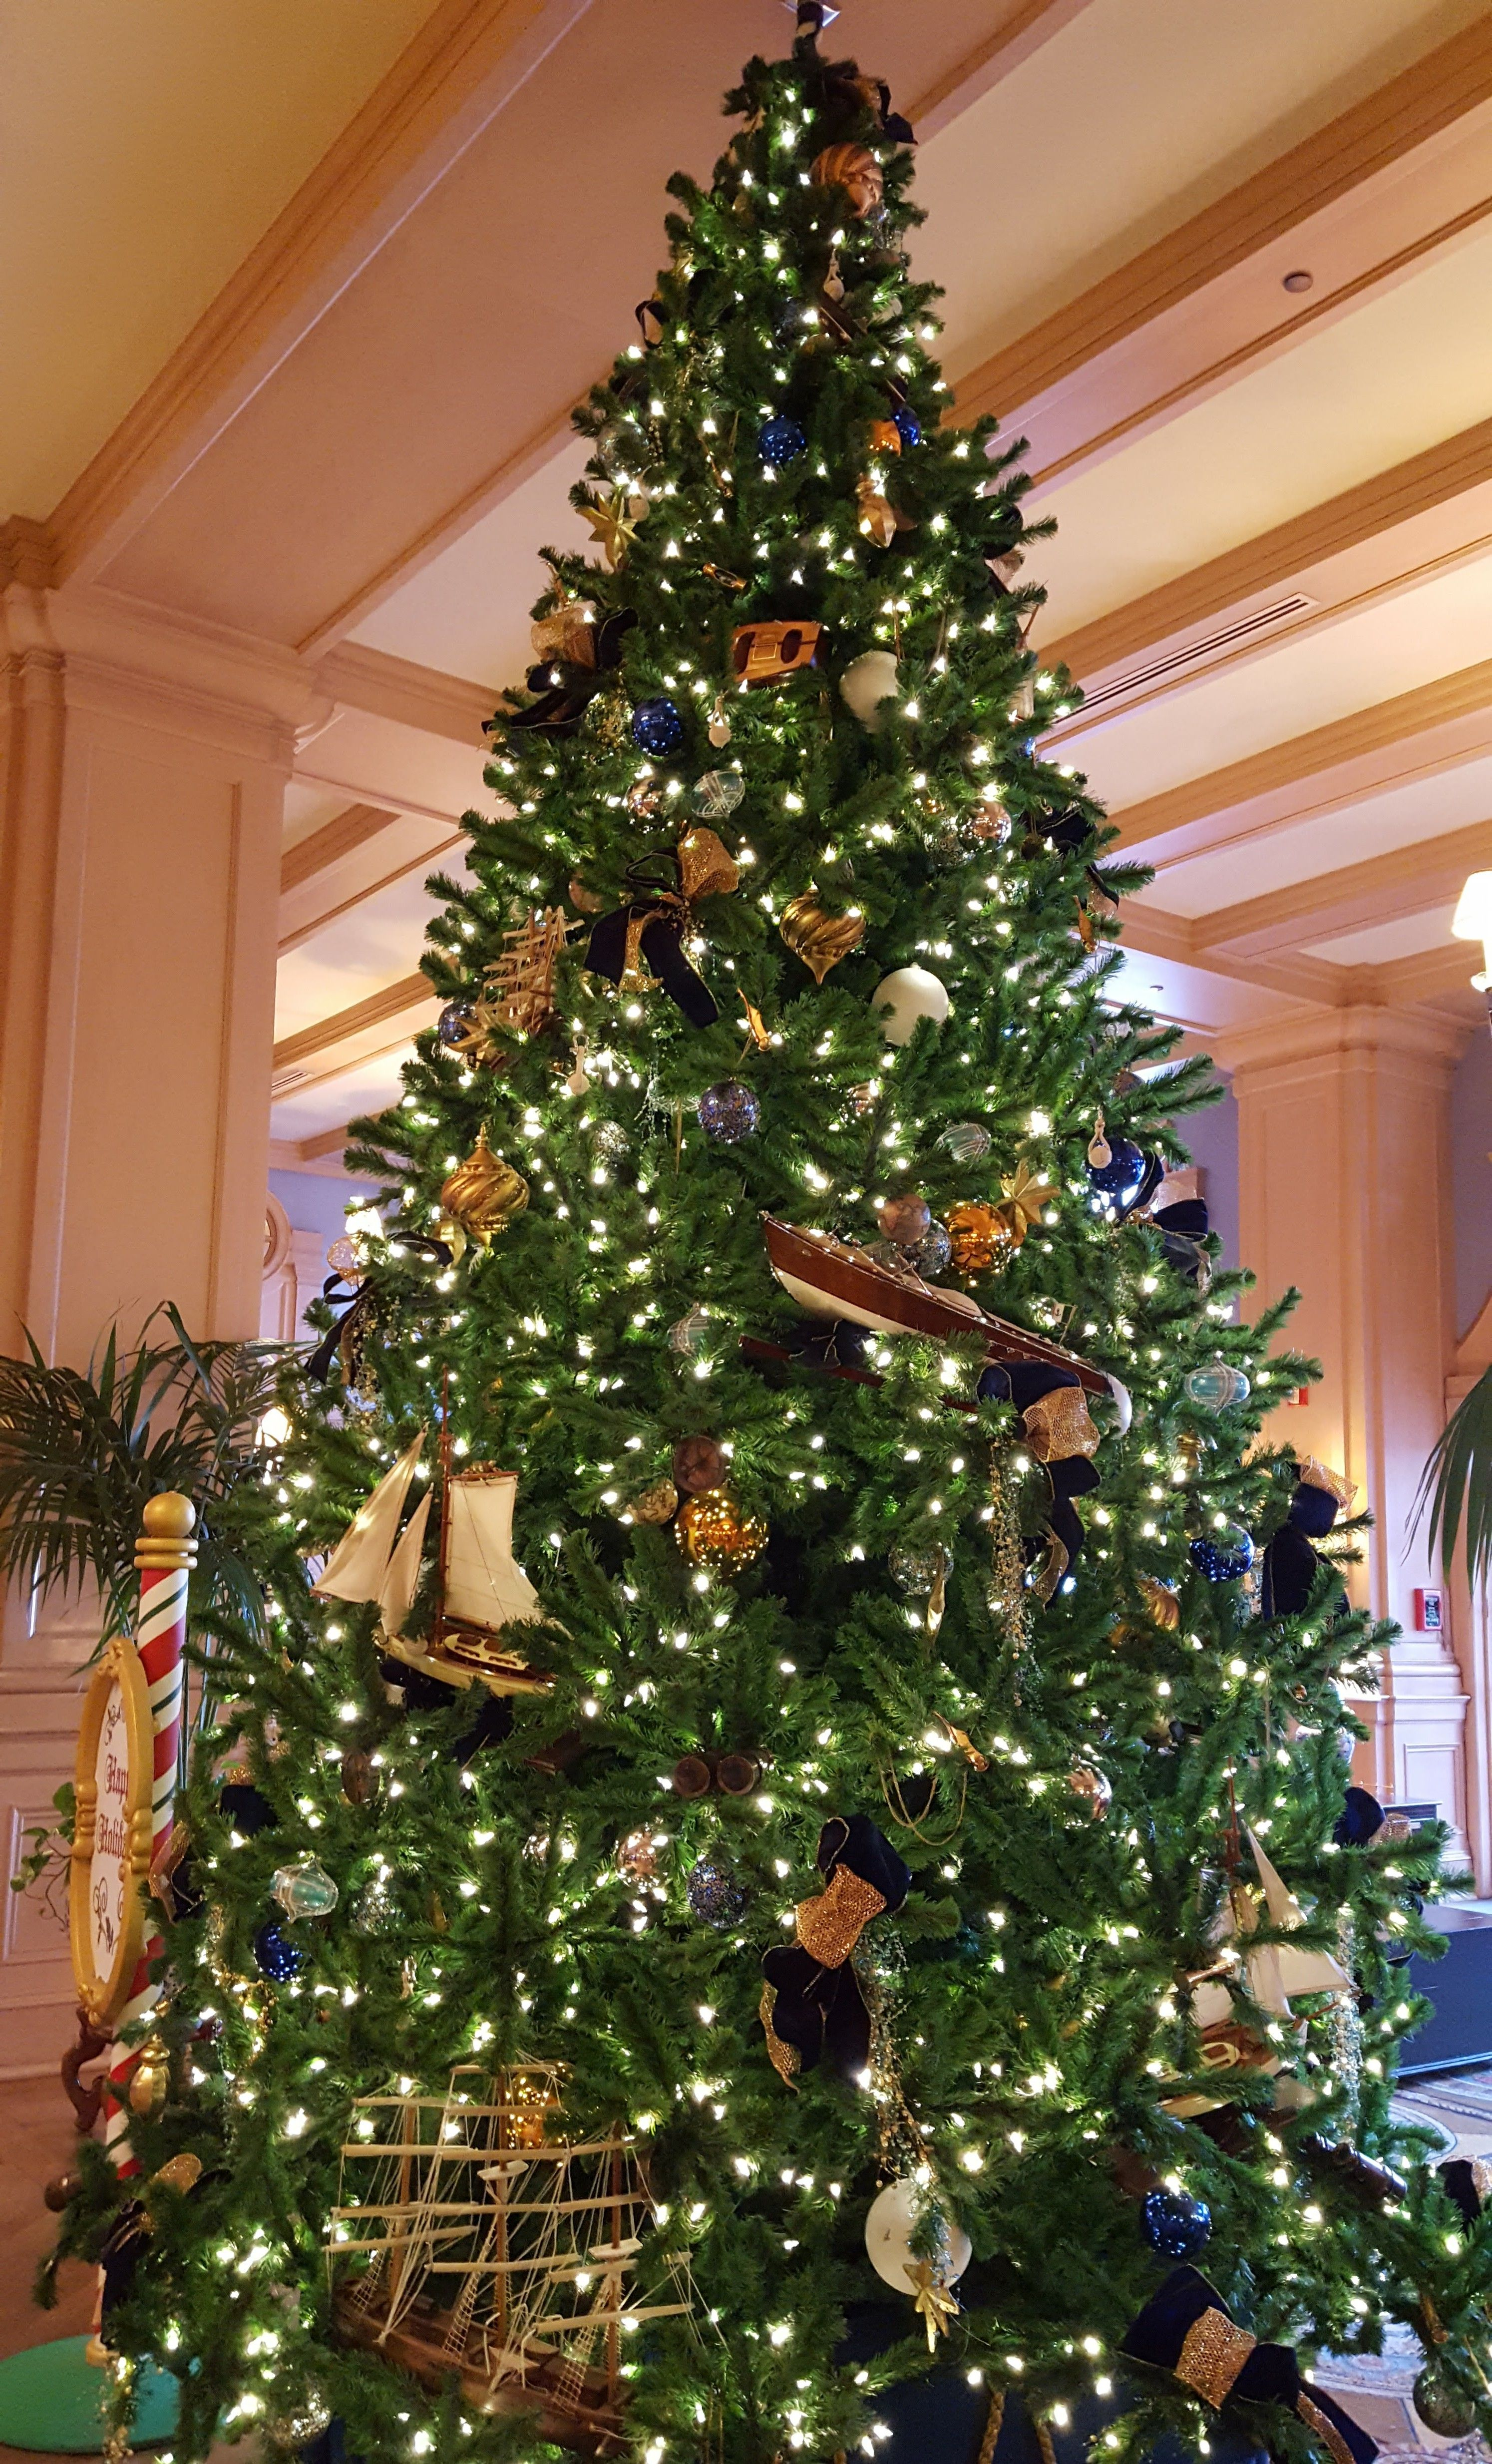 Awesome Picture of Old Fashioned Ceramic Christmas Tree - Fabulous ...